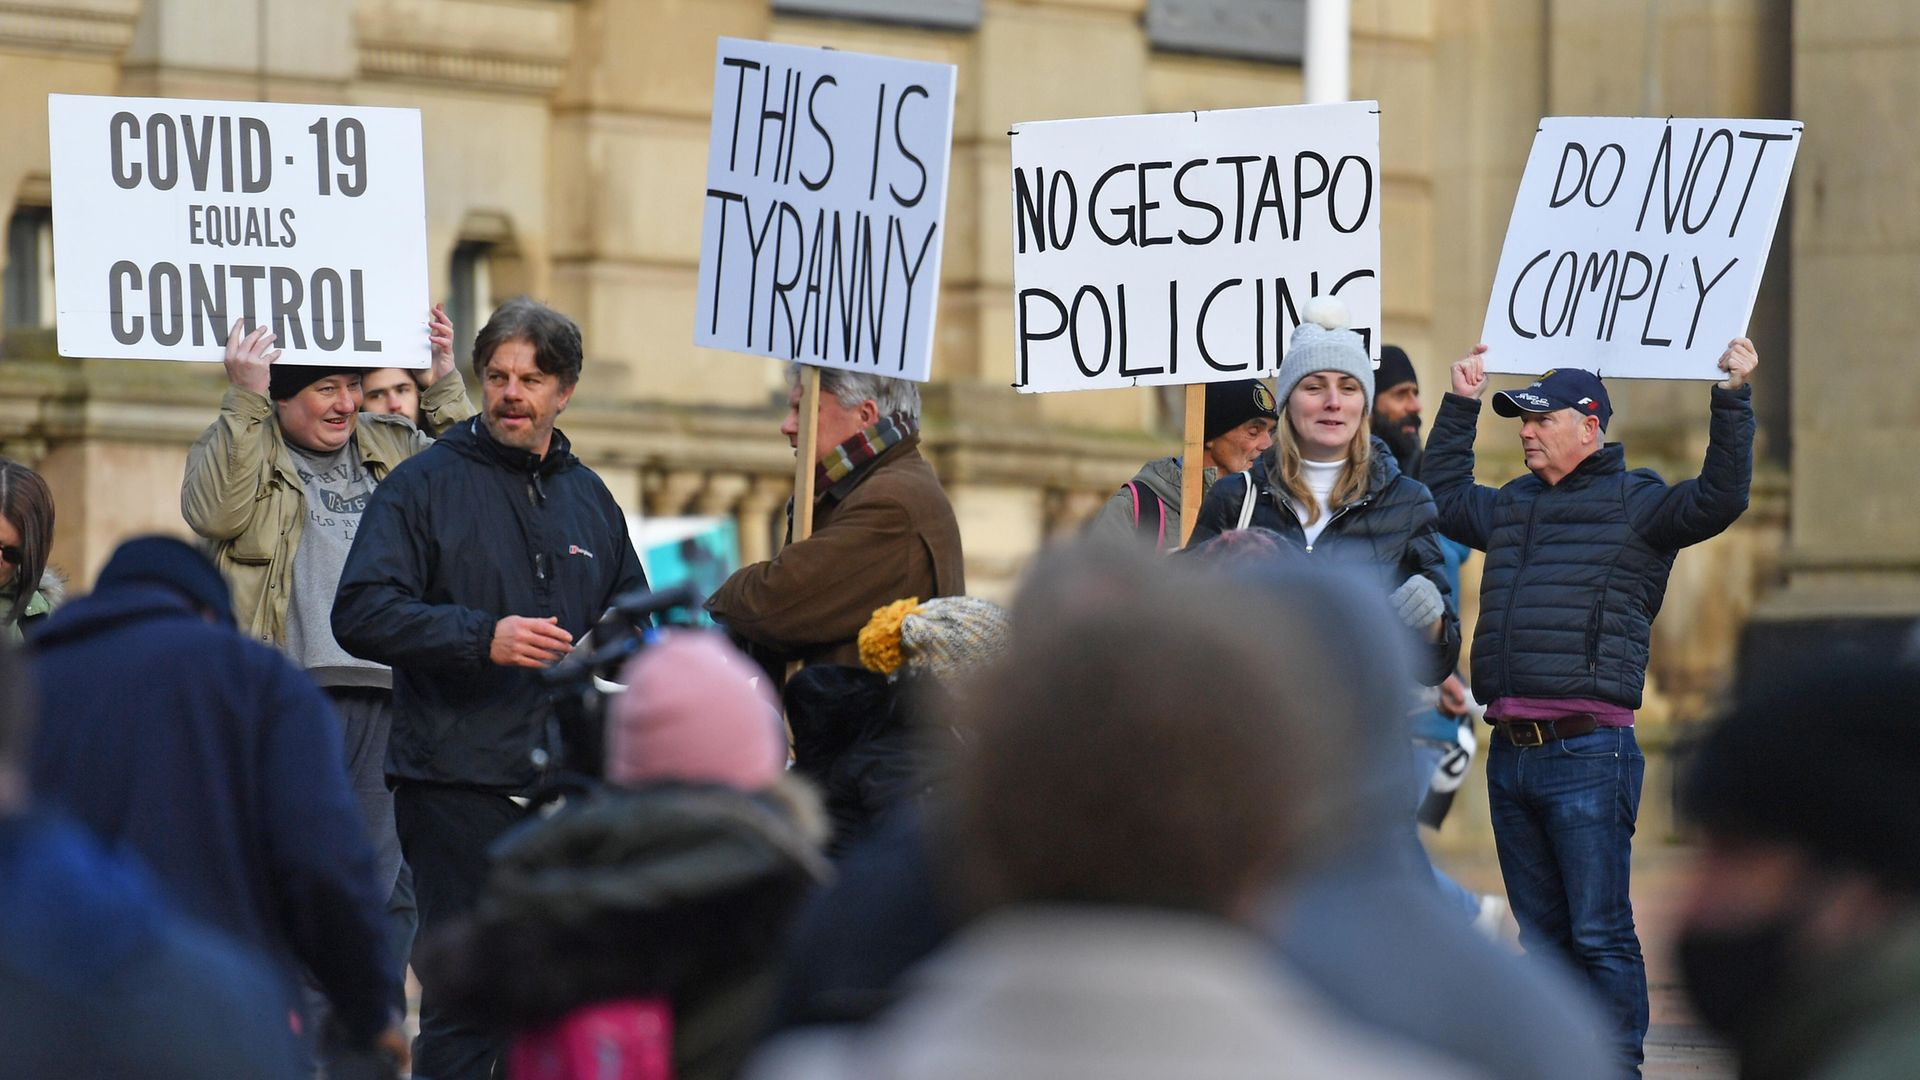 People take part in a demonstration in Victoria Square, Birmingham, to protest against coronavirus lockdown restrictions. - Credit: PA